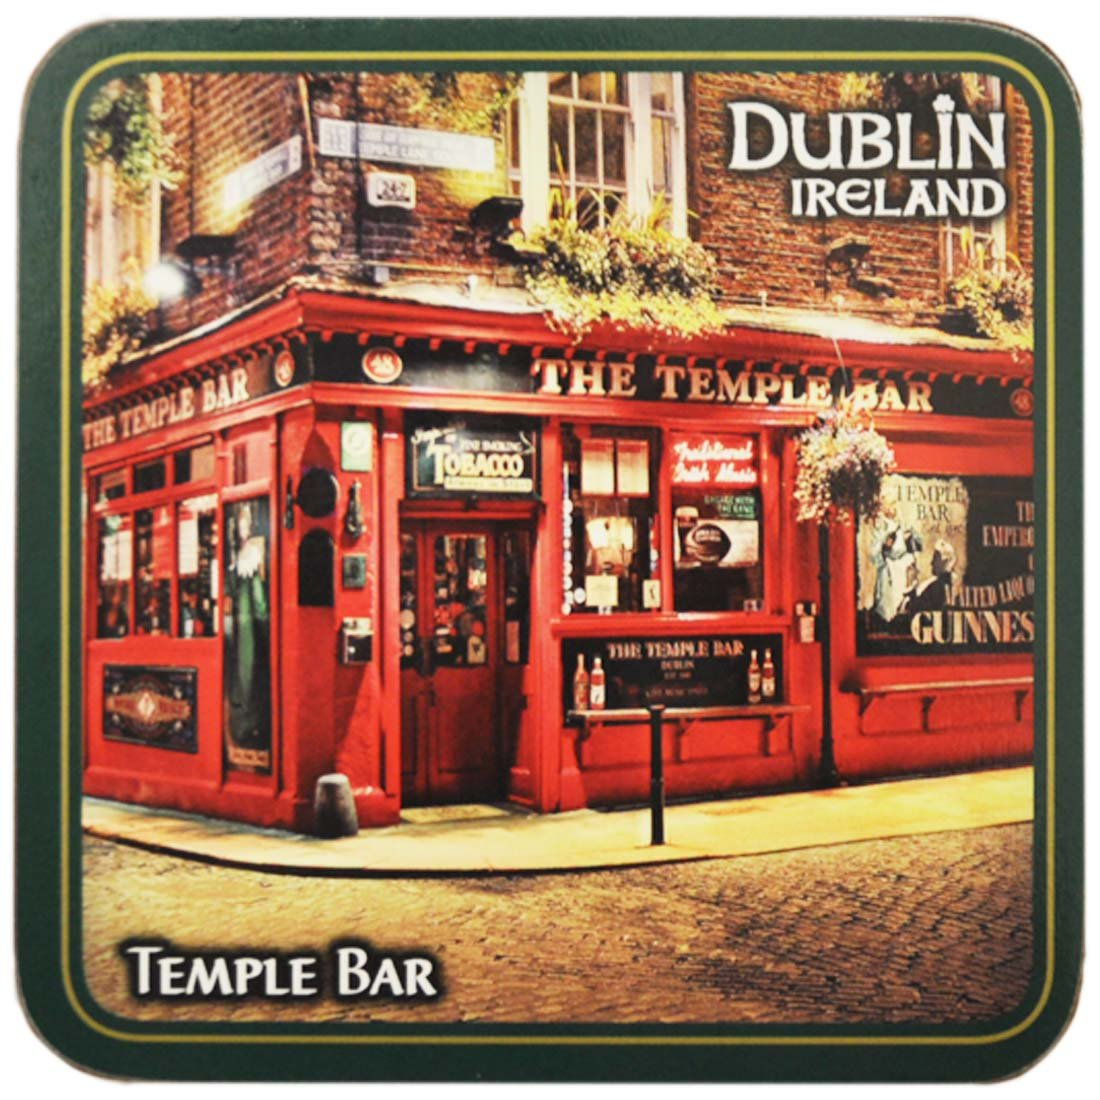 Ireland Coaster Of The Famous Temple Bar Dublin, Renowned For Its Whiskey